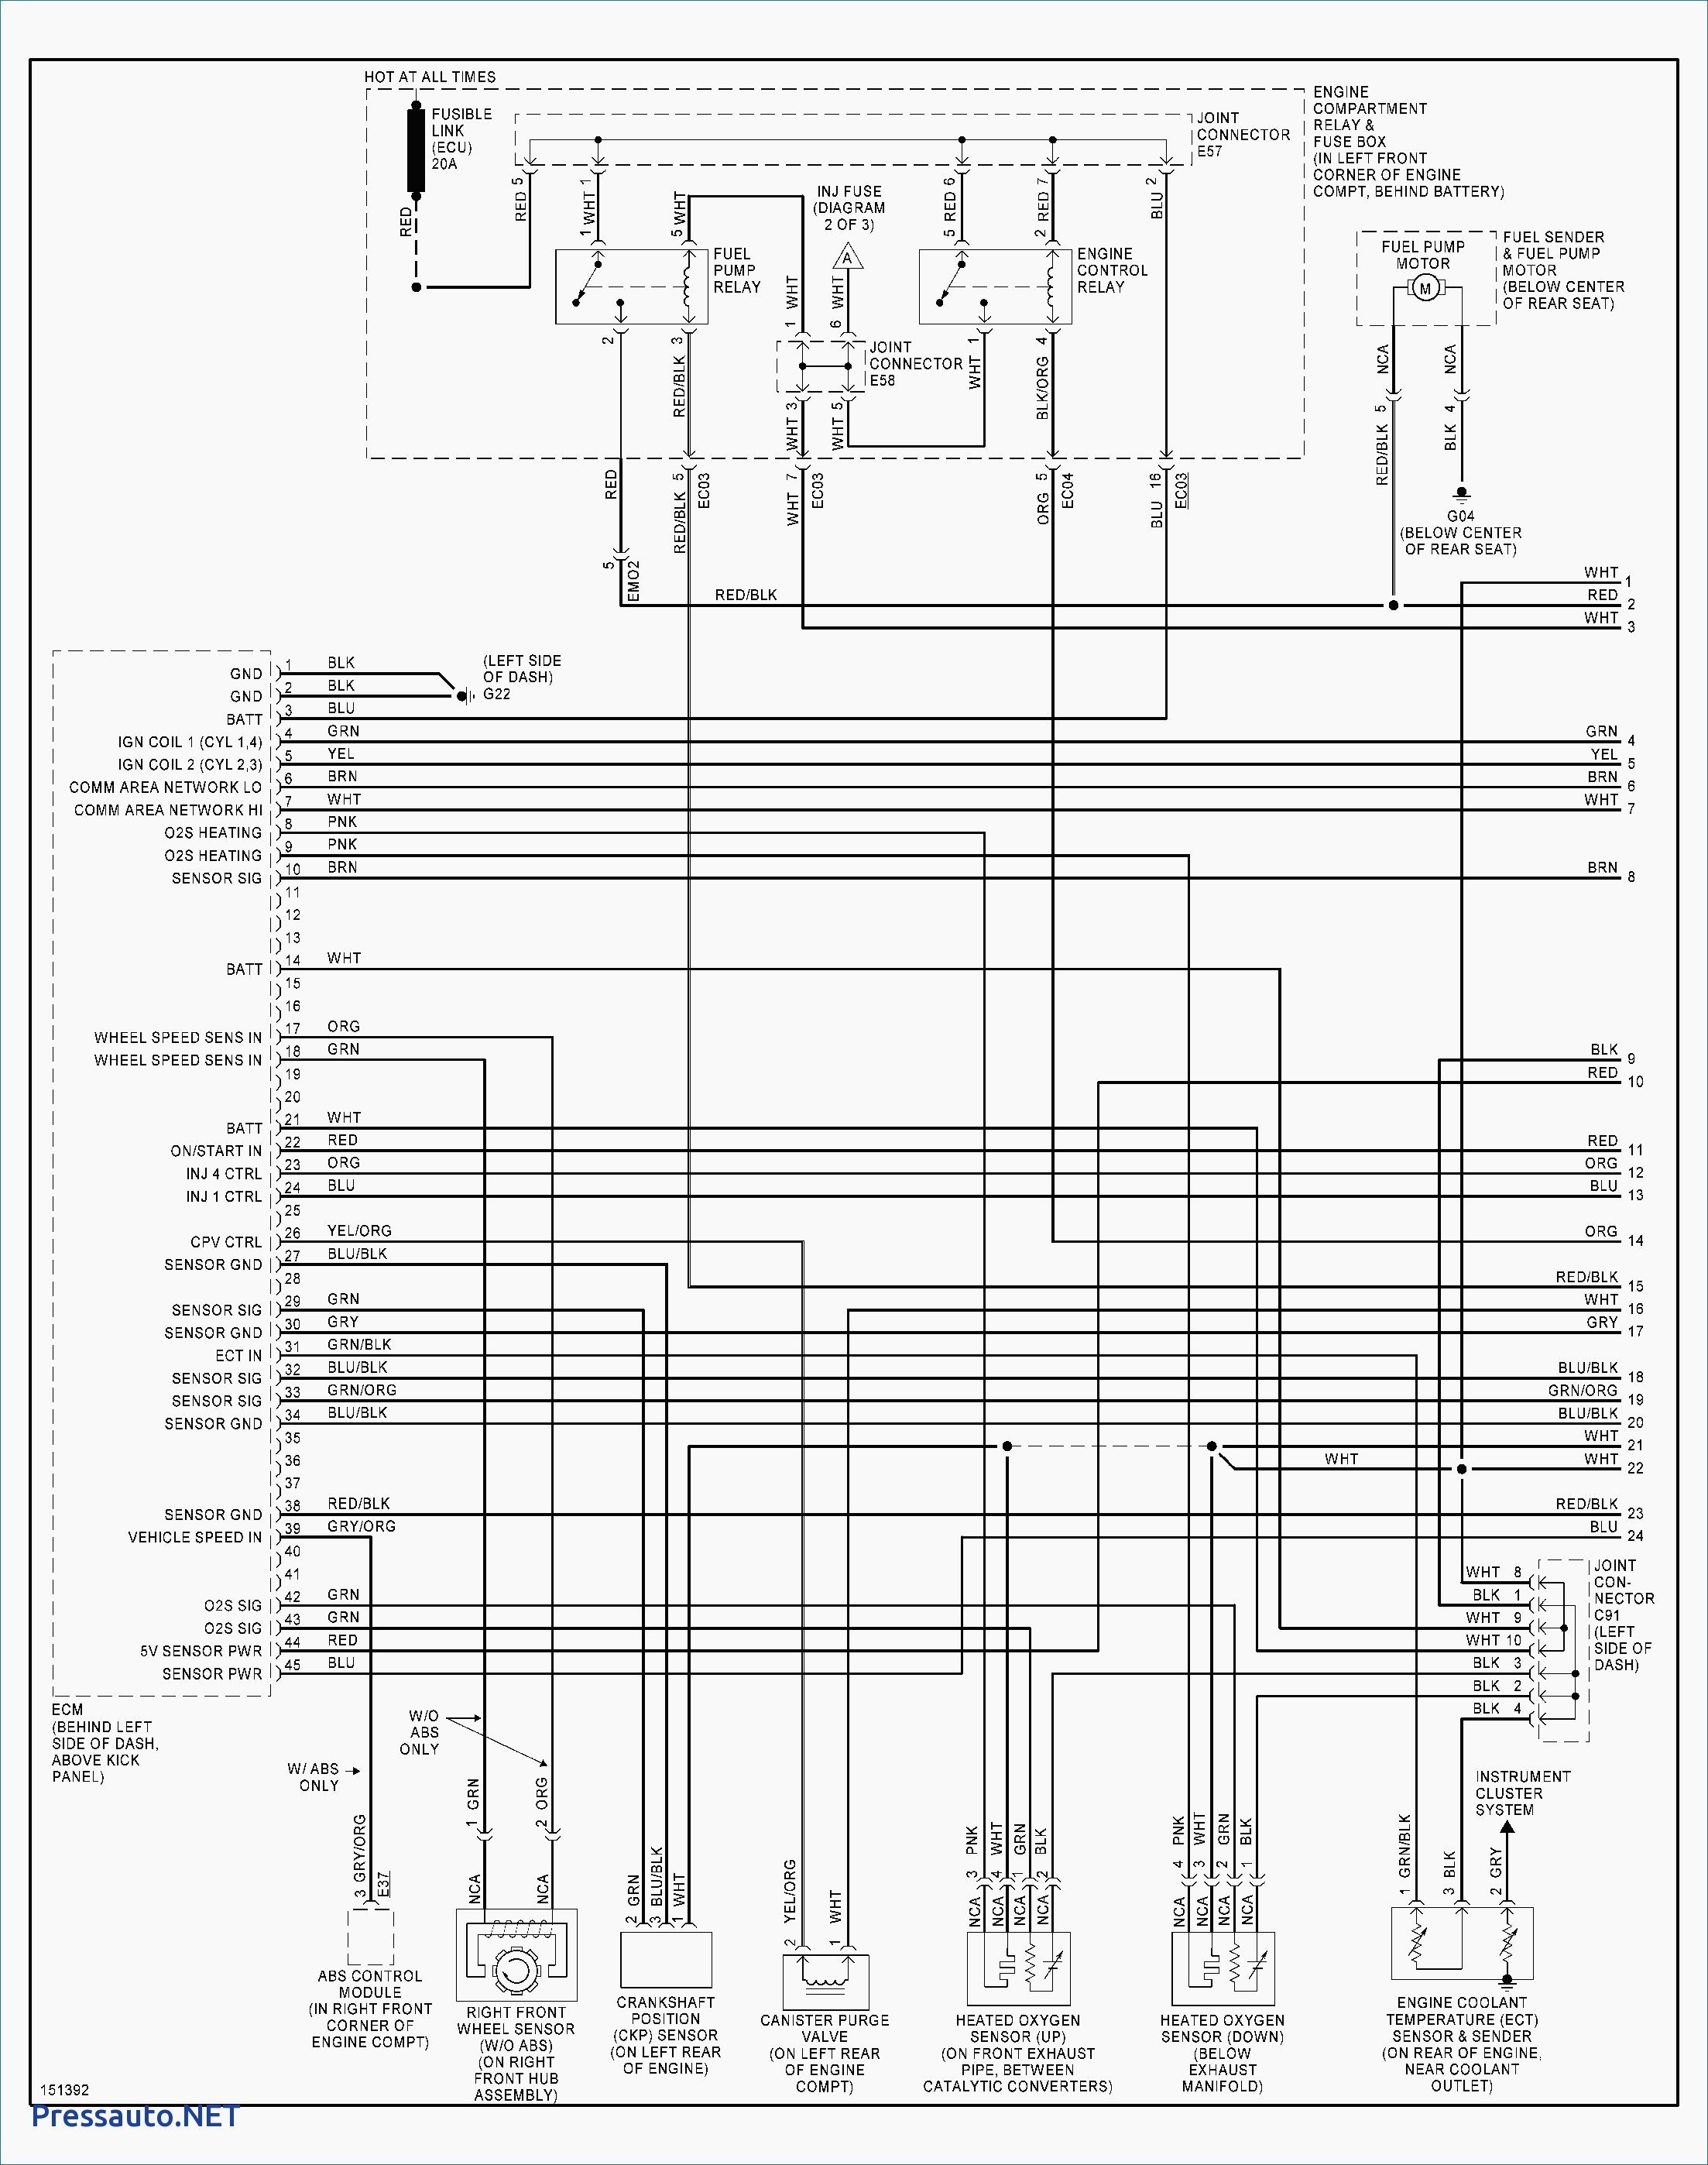 2000 Hyundai Elantra Engine Diagram 2005 Hyundai Accent Engine Diagram 2005  Hyundai sonata Wiring Of 2000